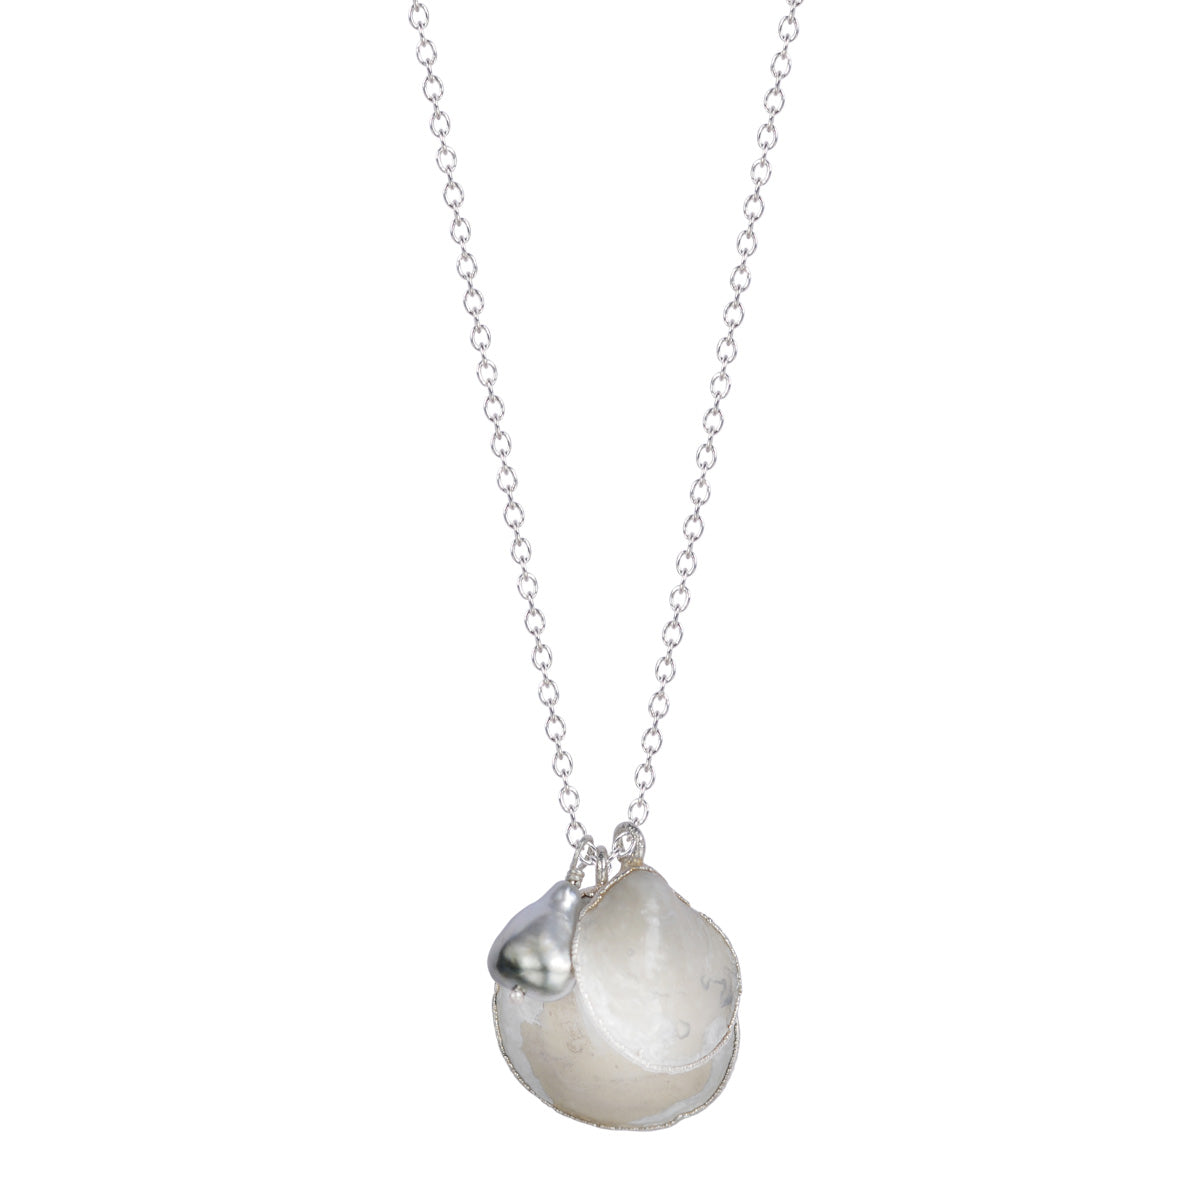 Silver Double Jingle Shell Necklace with Tahitian Pearl on Chain